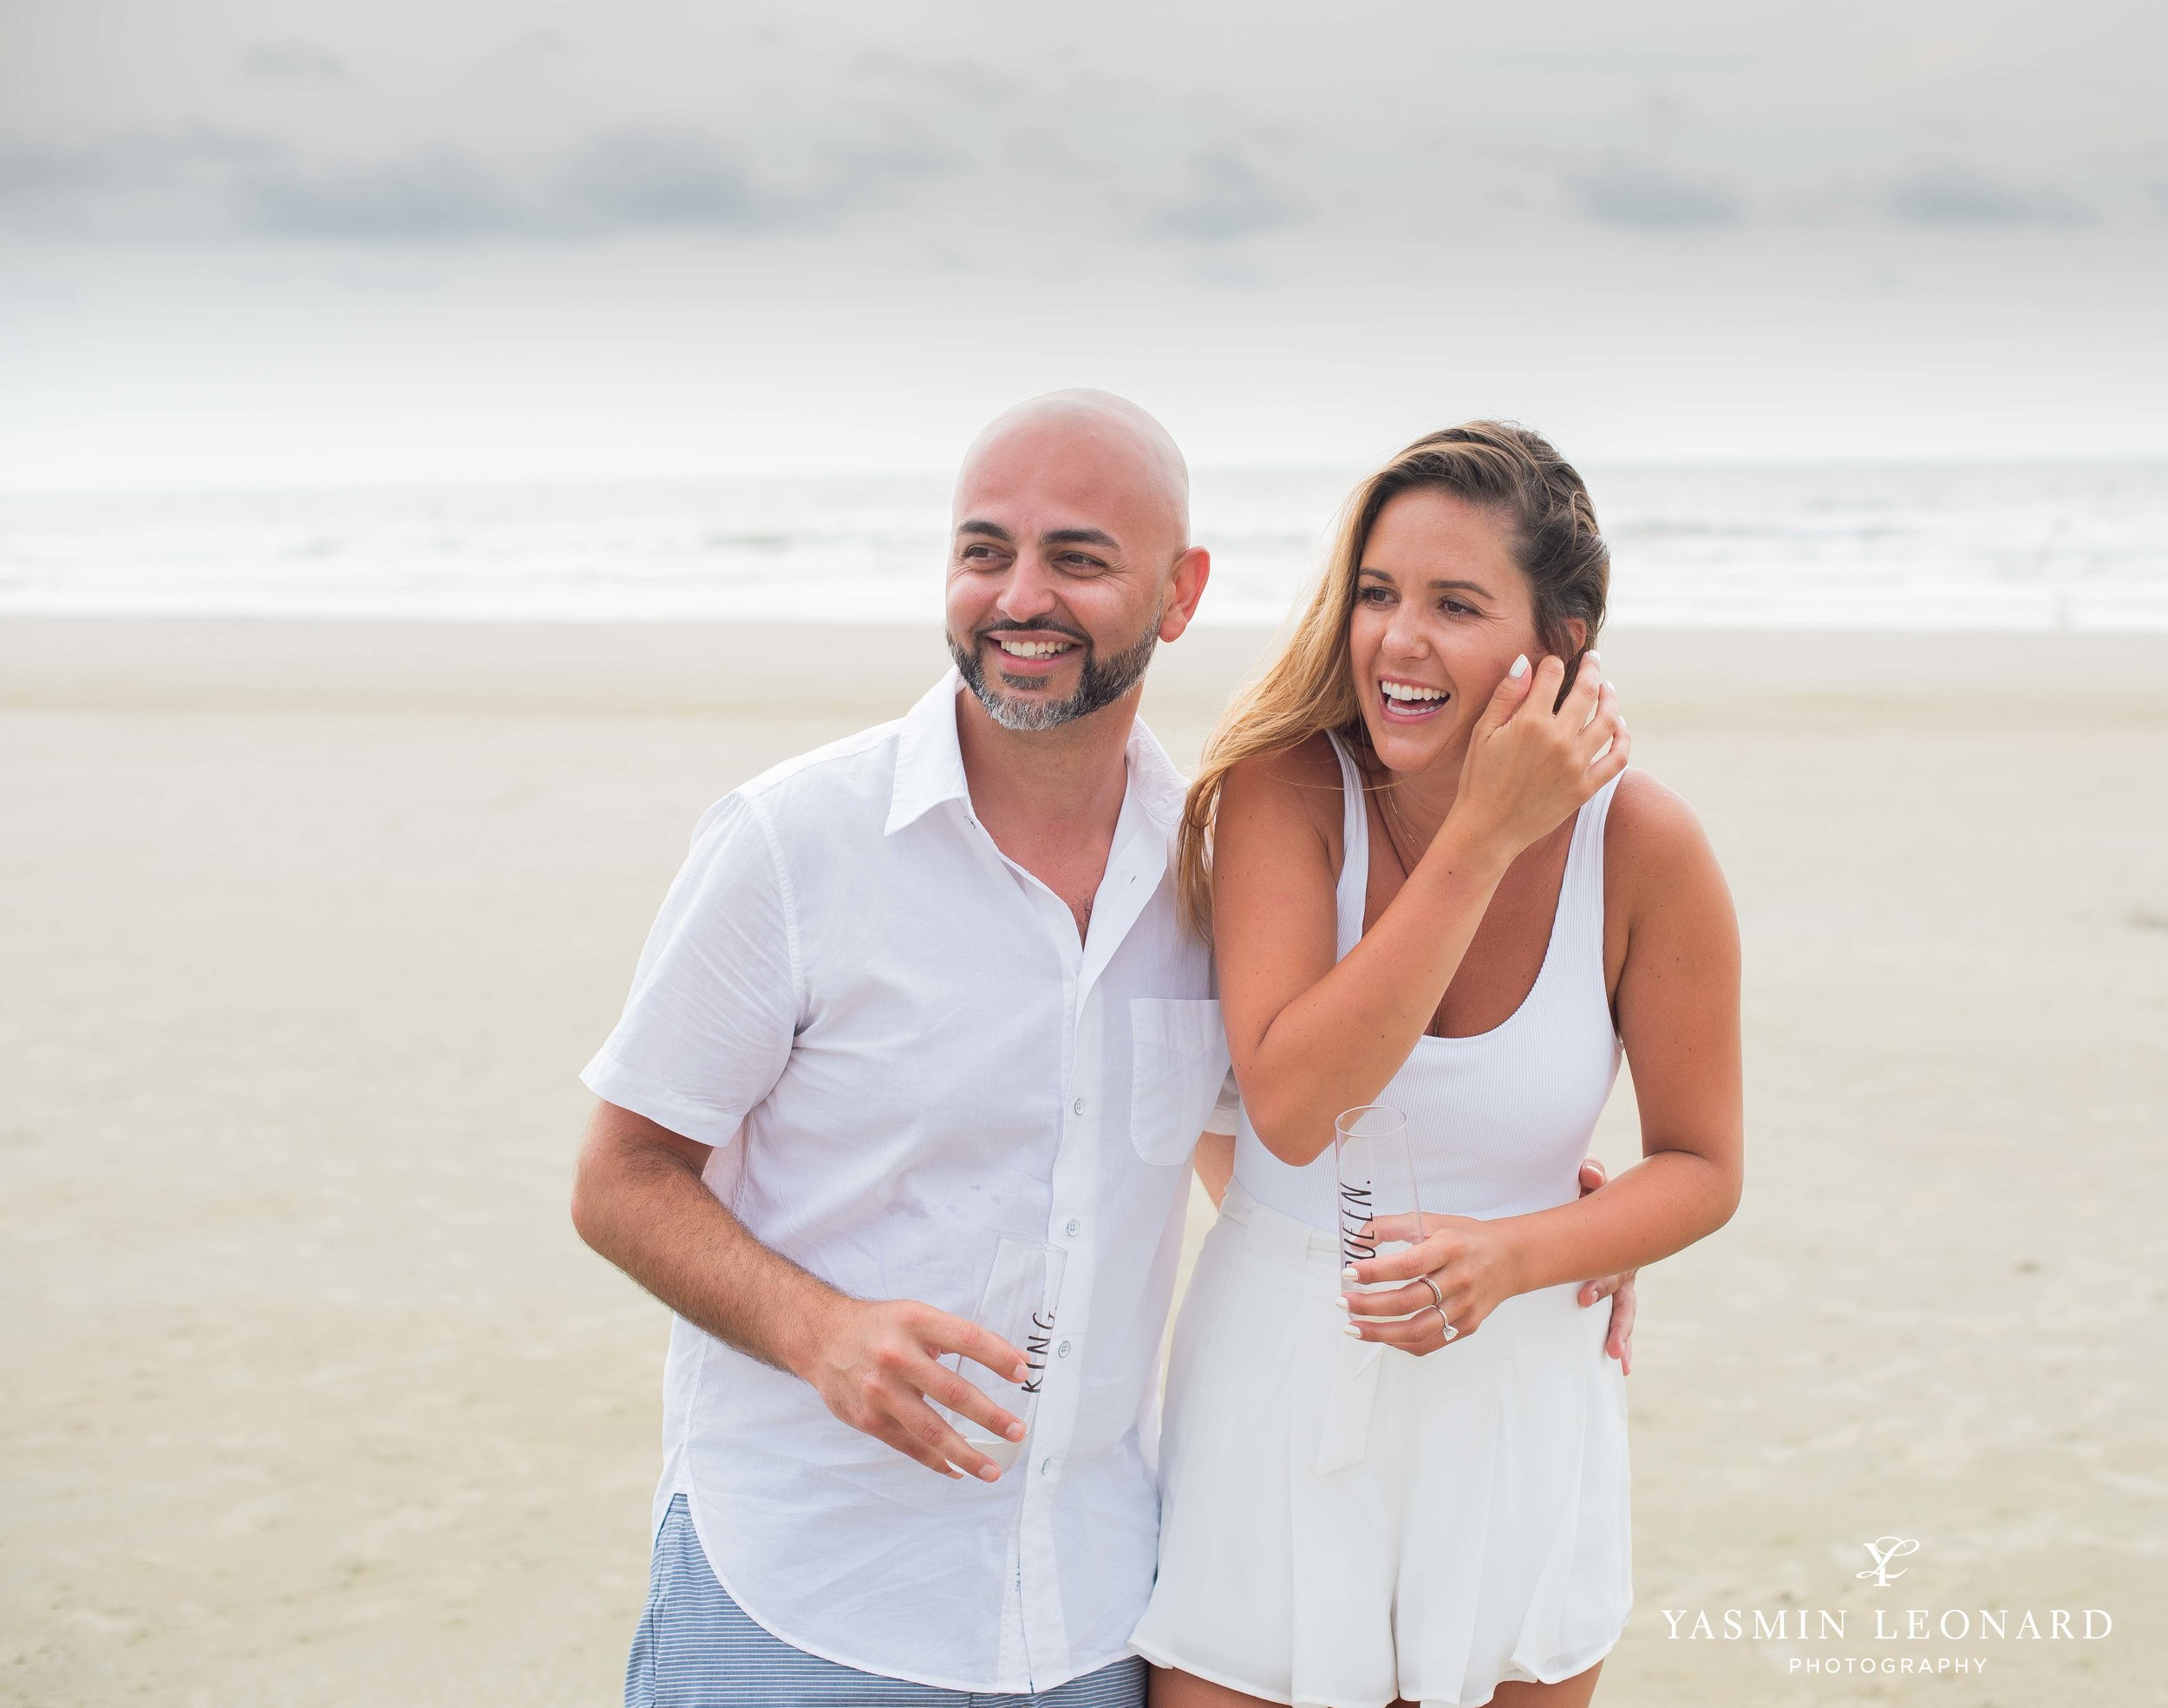 Beach Proposal - Beach Engagement Kiawah Island Photographer - NC Beach Photographer - How He Asked - NC Photographer - Proposal Ideas - Engagement Ring - Yasmin Leonard Photography-8.jpg